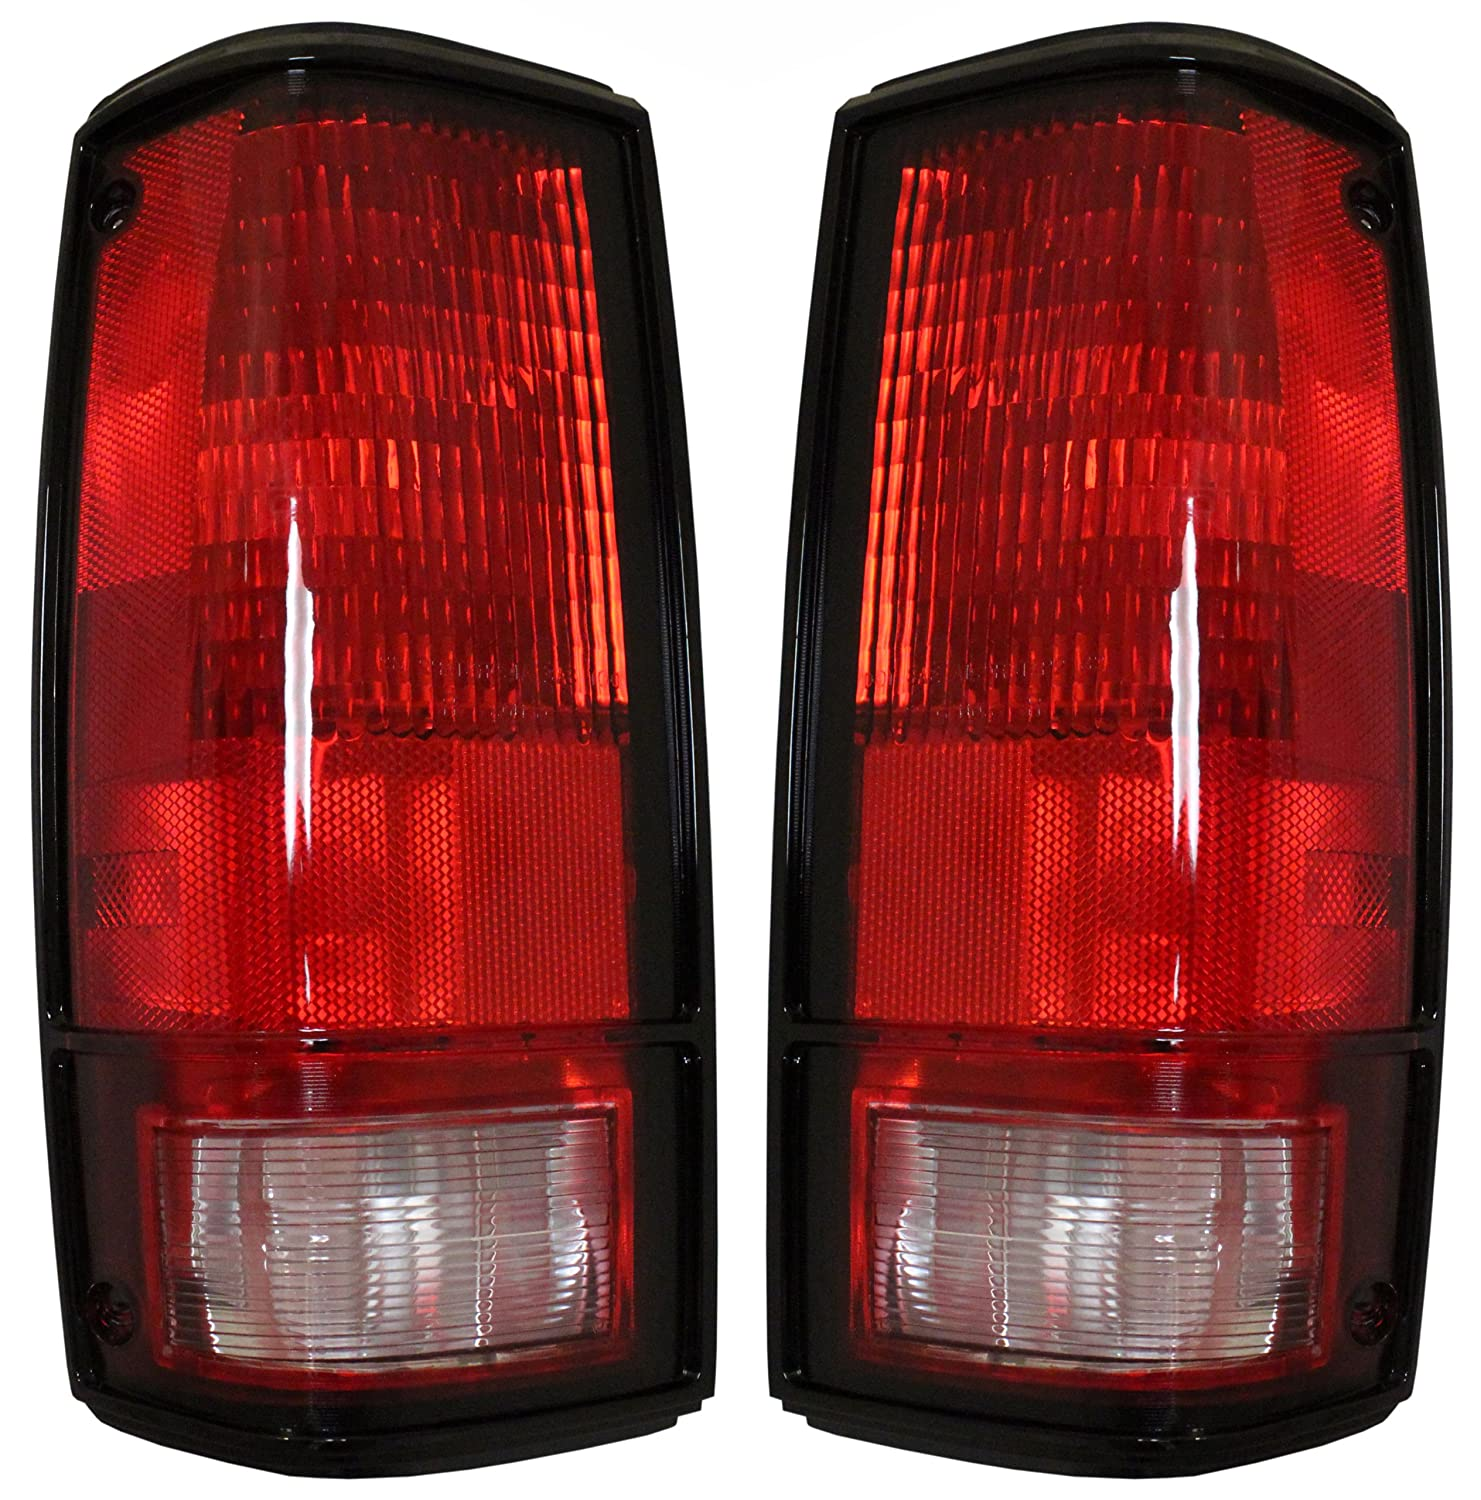 Chevrolet S10 Tail Lights - Left & Right Rear / back Tail Lamps W/o Aftermarket Replacement